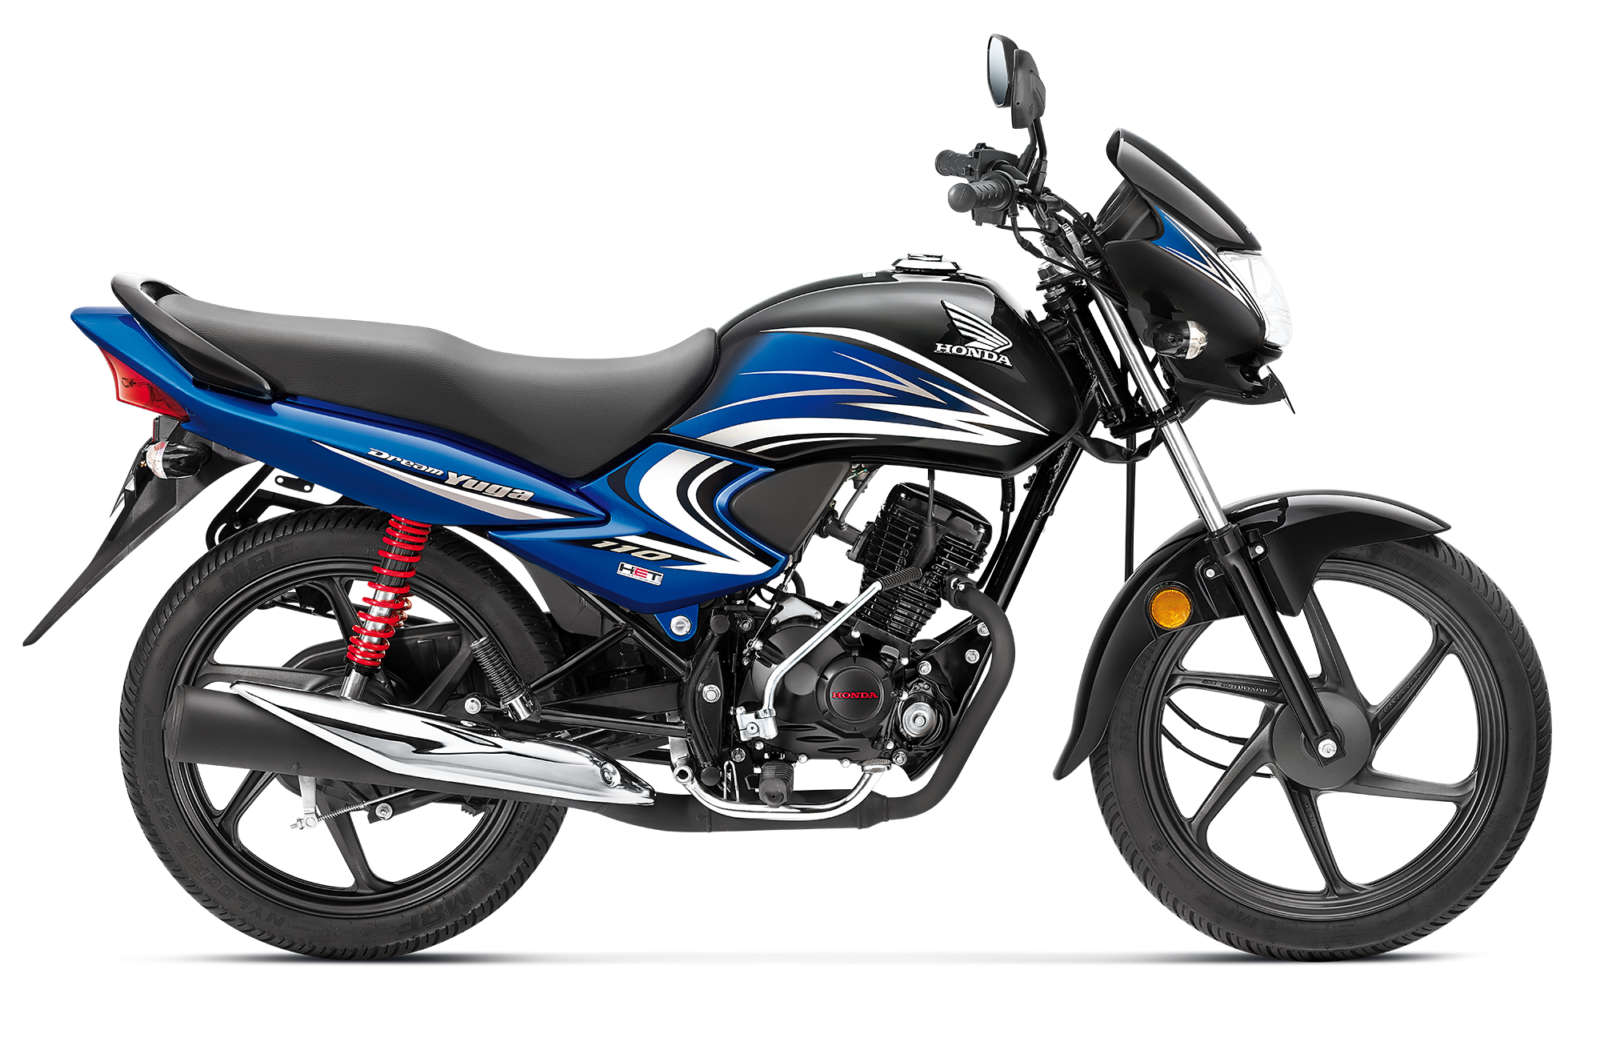 Honda Dream Yuga - Black with Athletic Blue Metallic